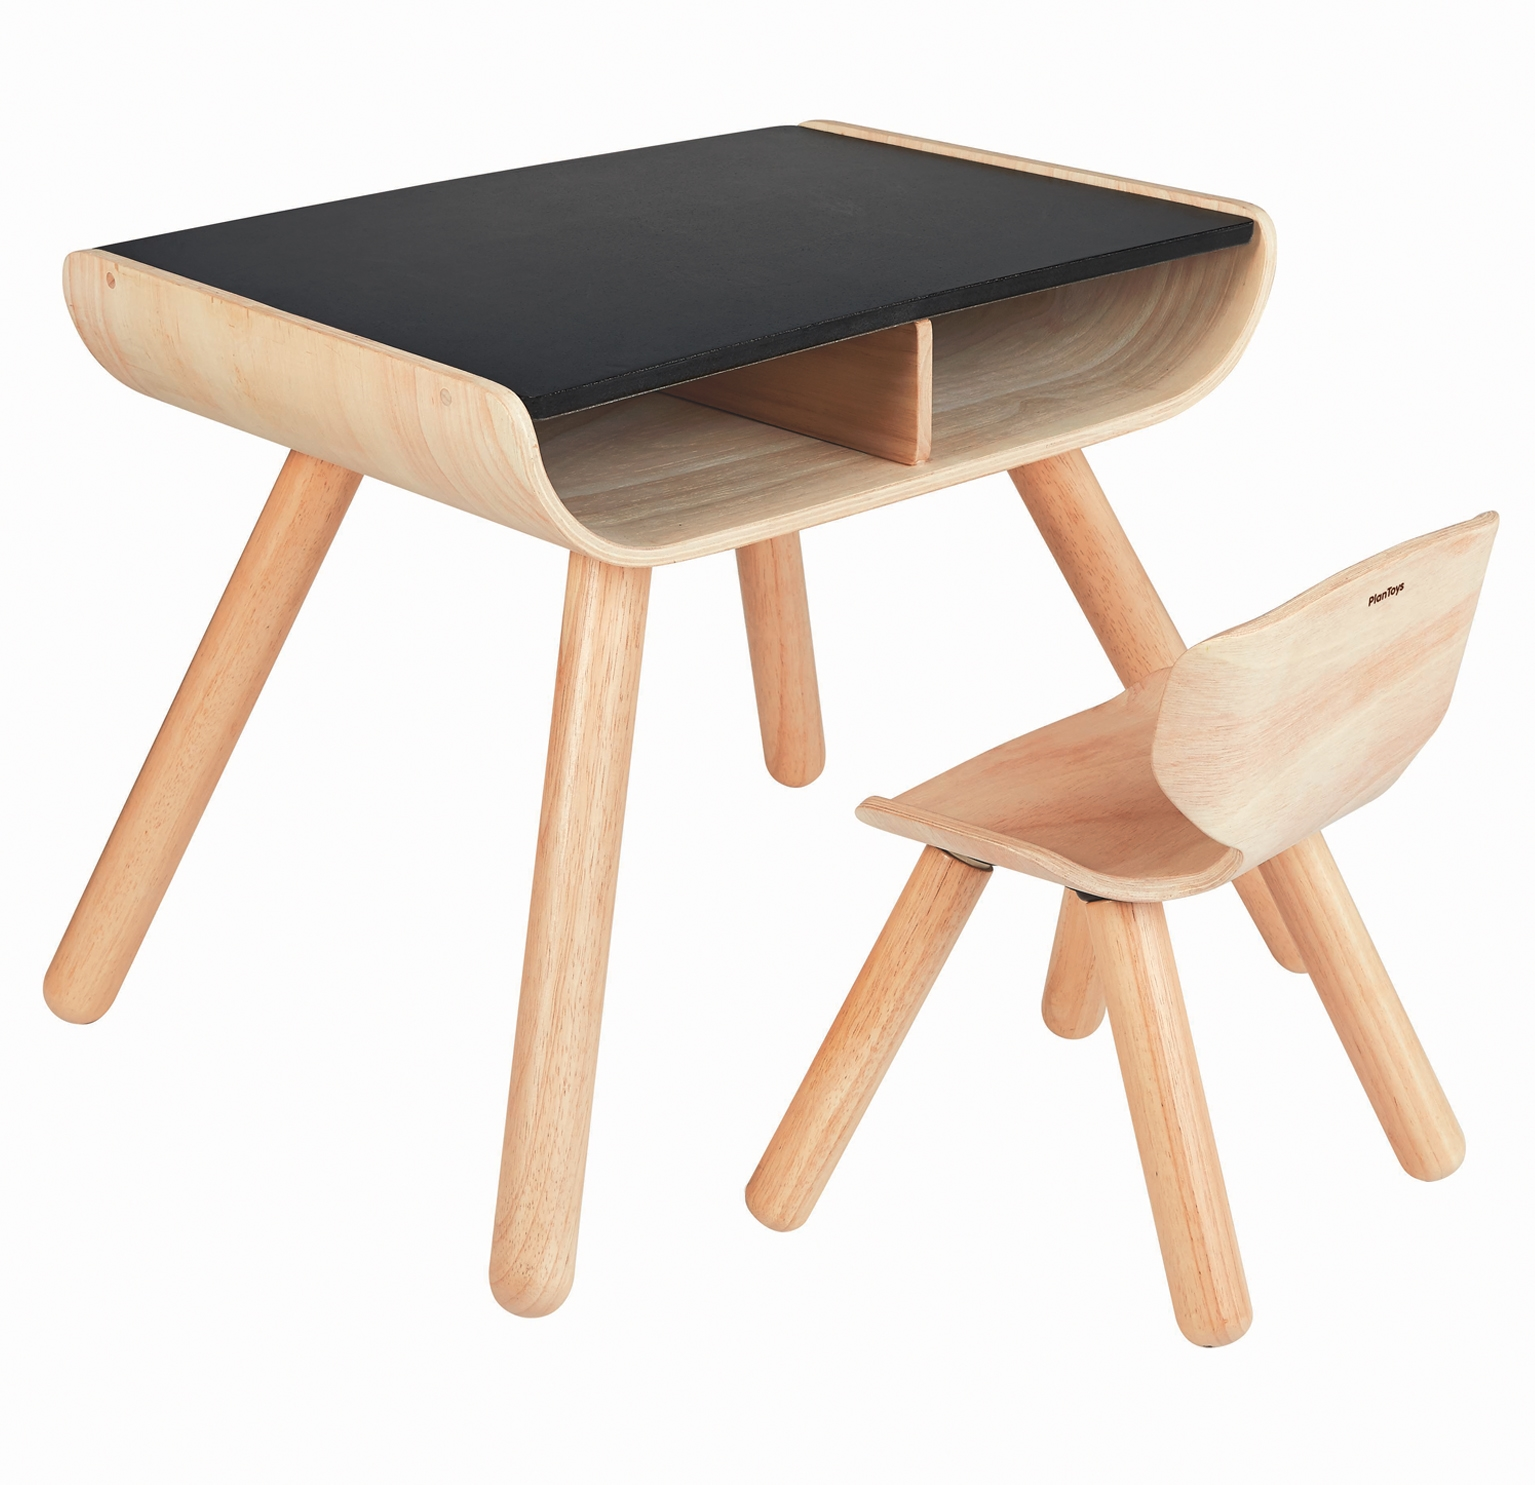 PlanToys - Table and Chair, Black (8703)